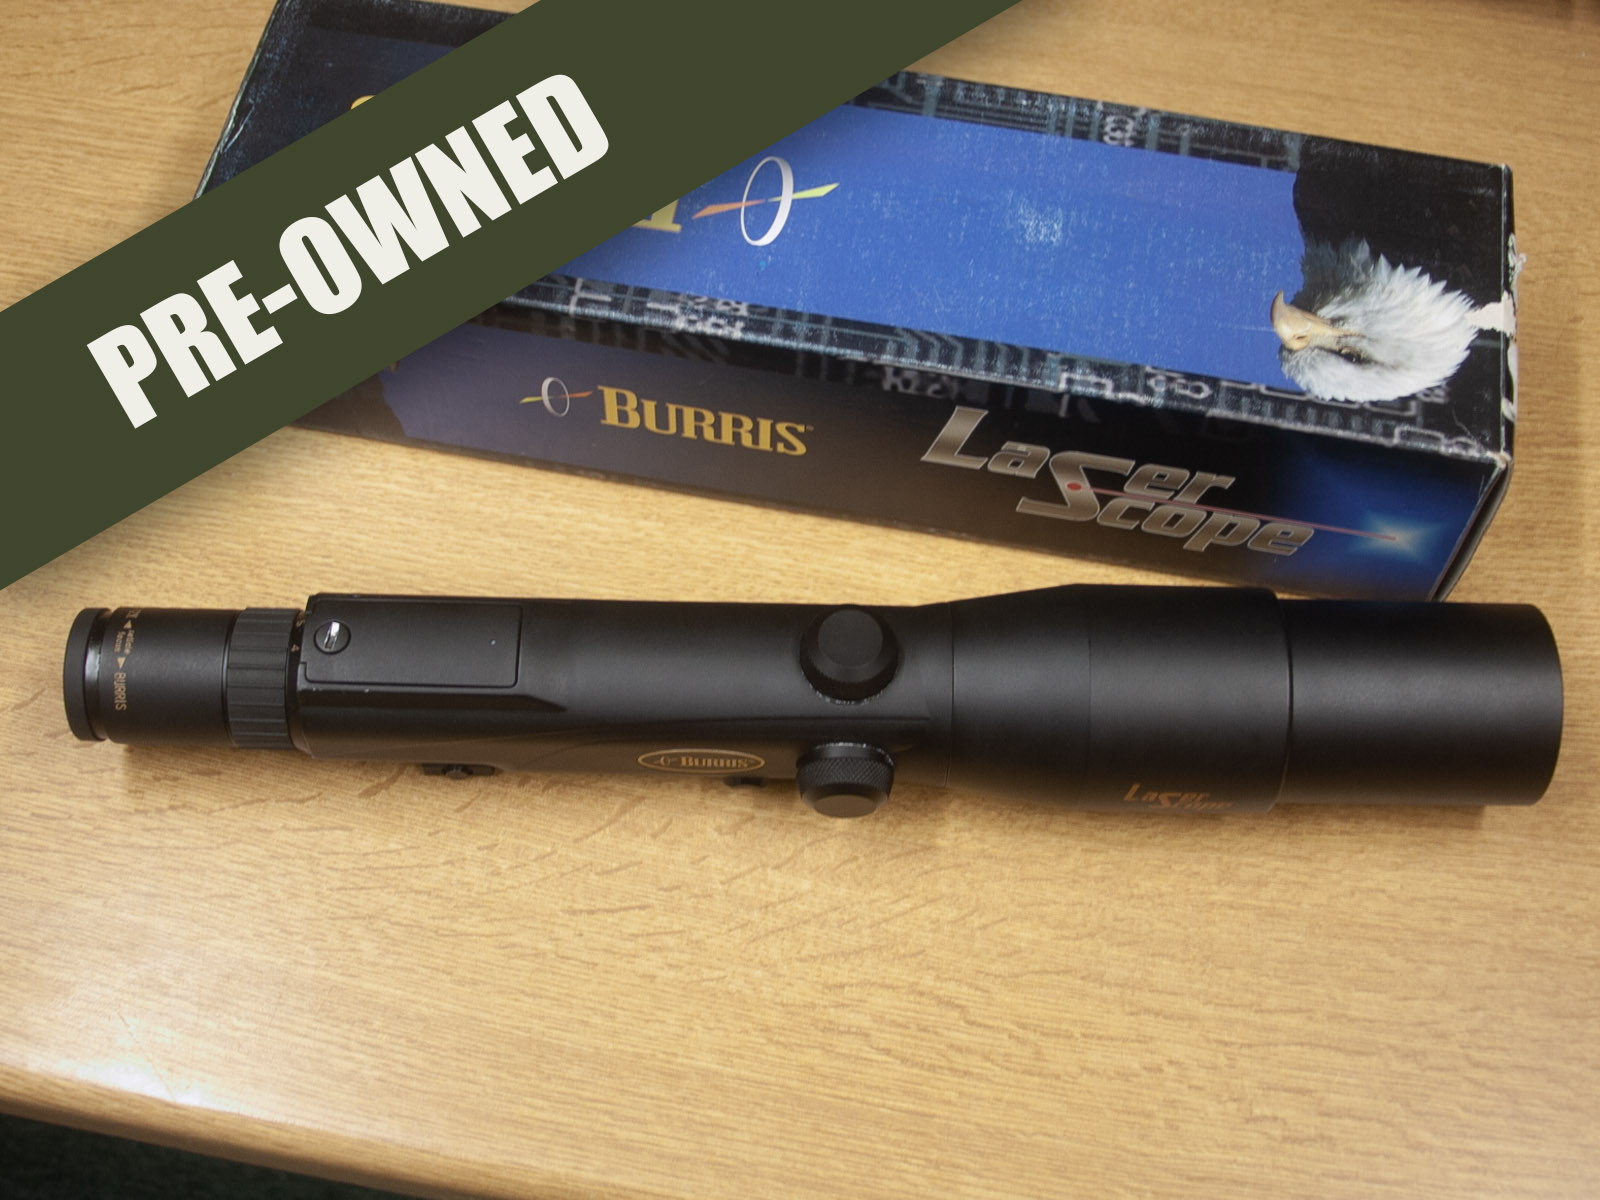 Burris Balistic Laserscope 4-12 X 42 - Pre-owned